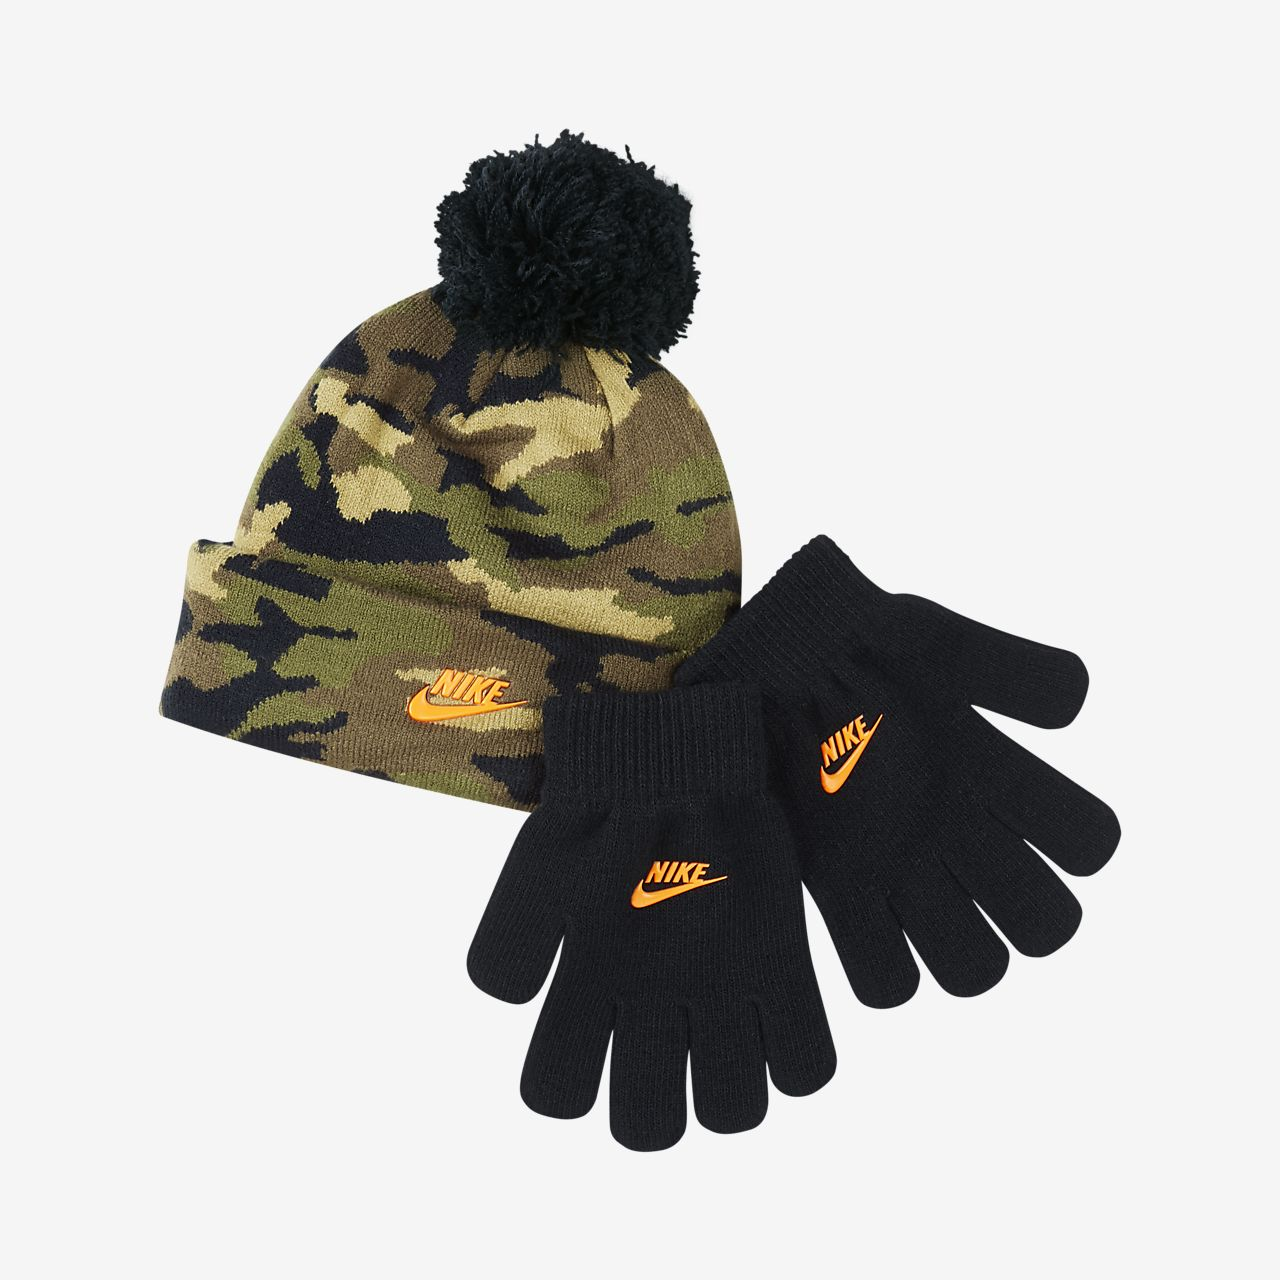 Nike Younger Kids' Beanie and Gloves Set